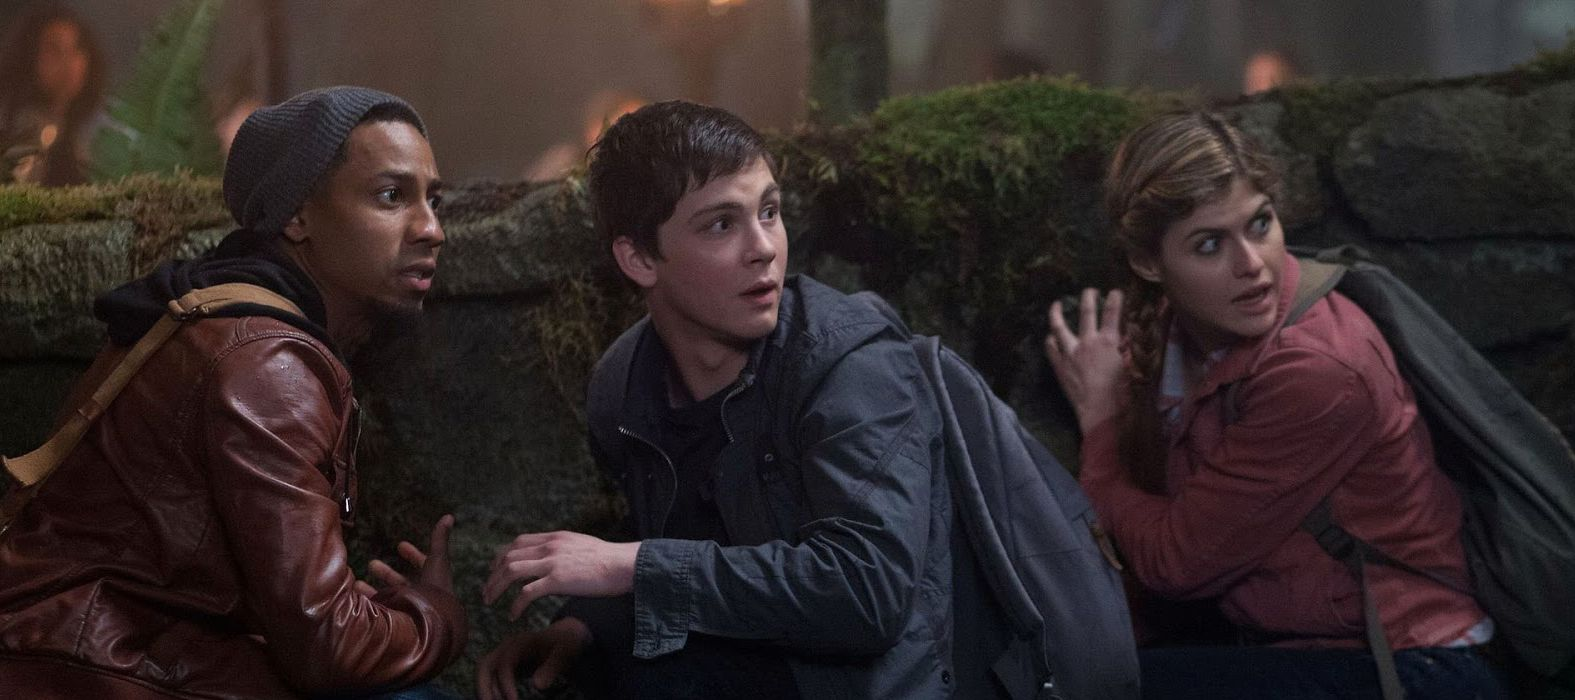 An image from Percy Jackson: Sea of Monsters